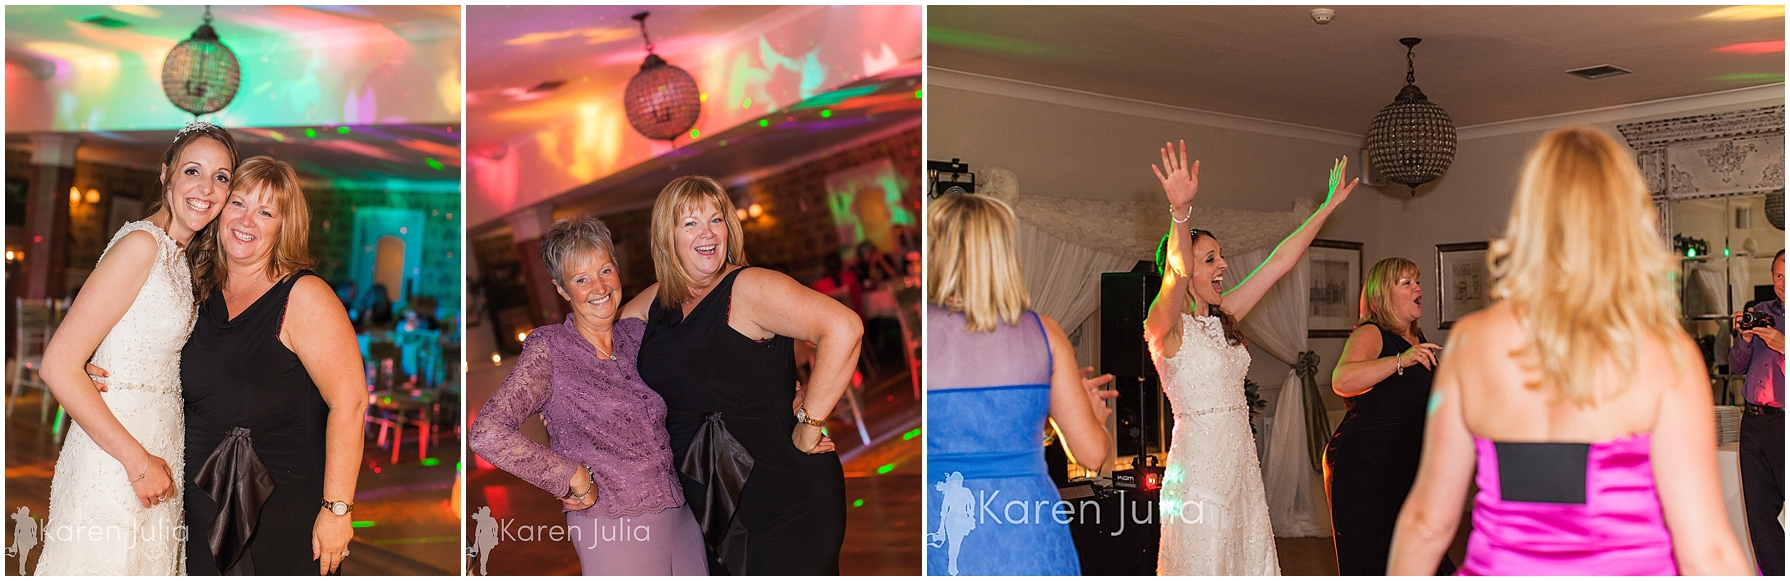 Shireburn-Arms-Wedding-Photography-61